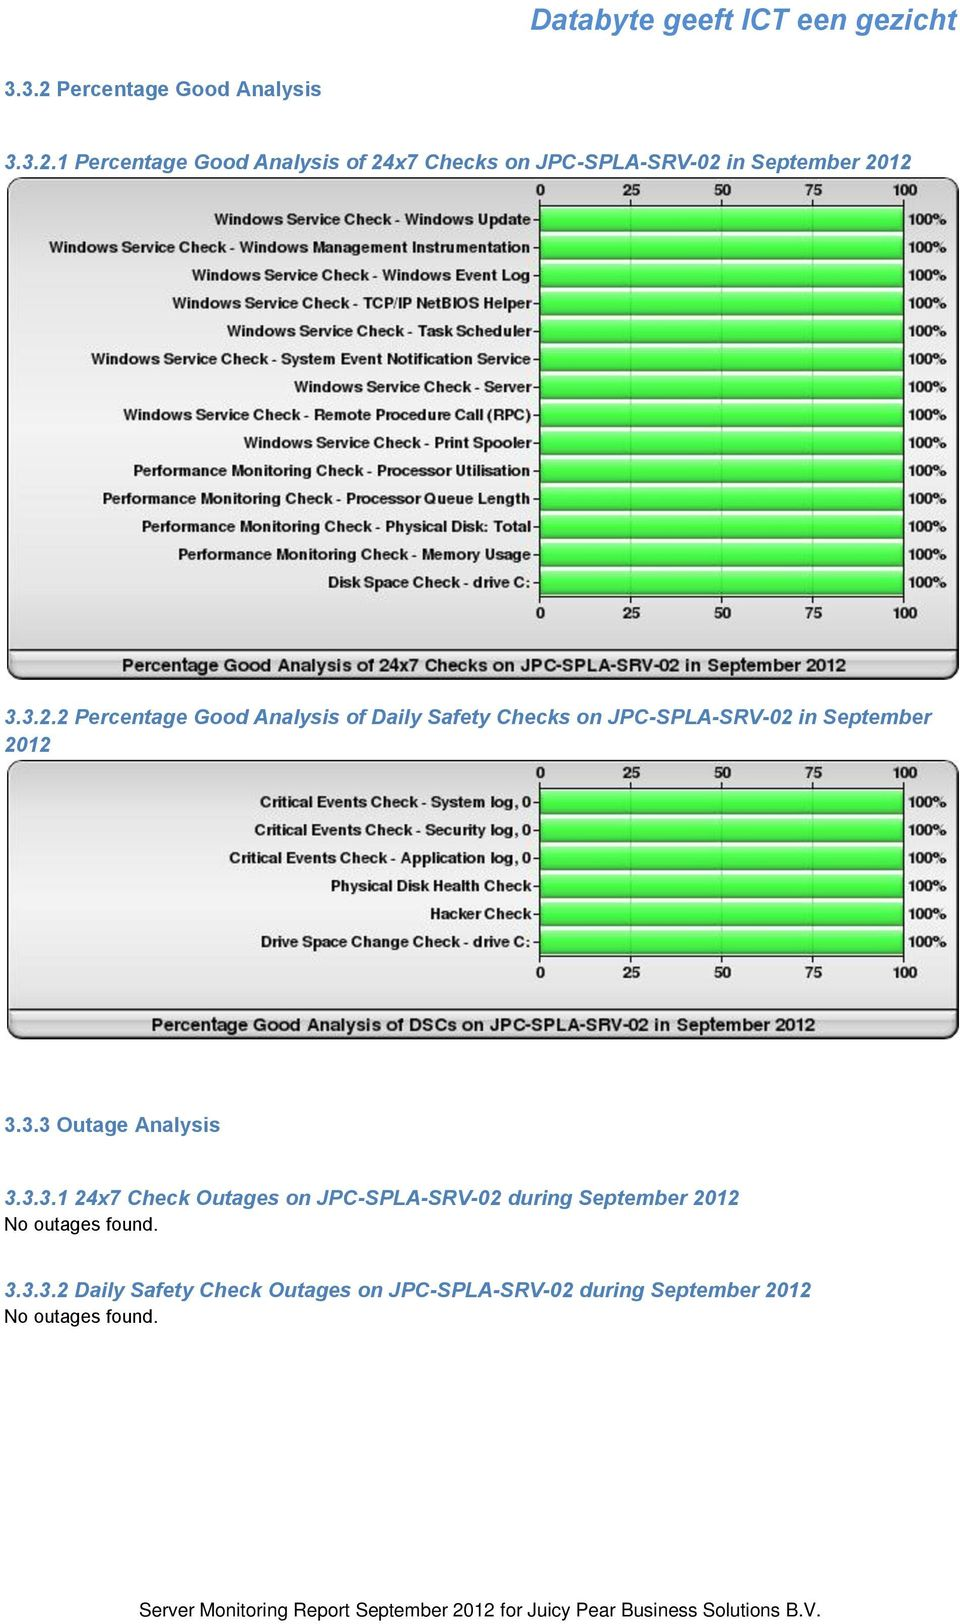 3.3.1 24x7 Check Outages on JPC-SPLA-SRV-02 during September 2012 No outages found. 3.3.3.2 Daily Safety Check Outages on JPC-SPLA-SRV-02 during September 2012 No outages found.